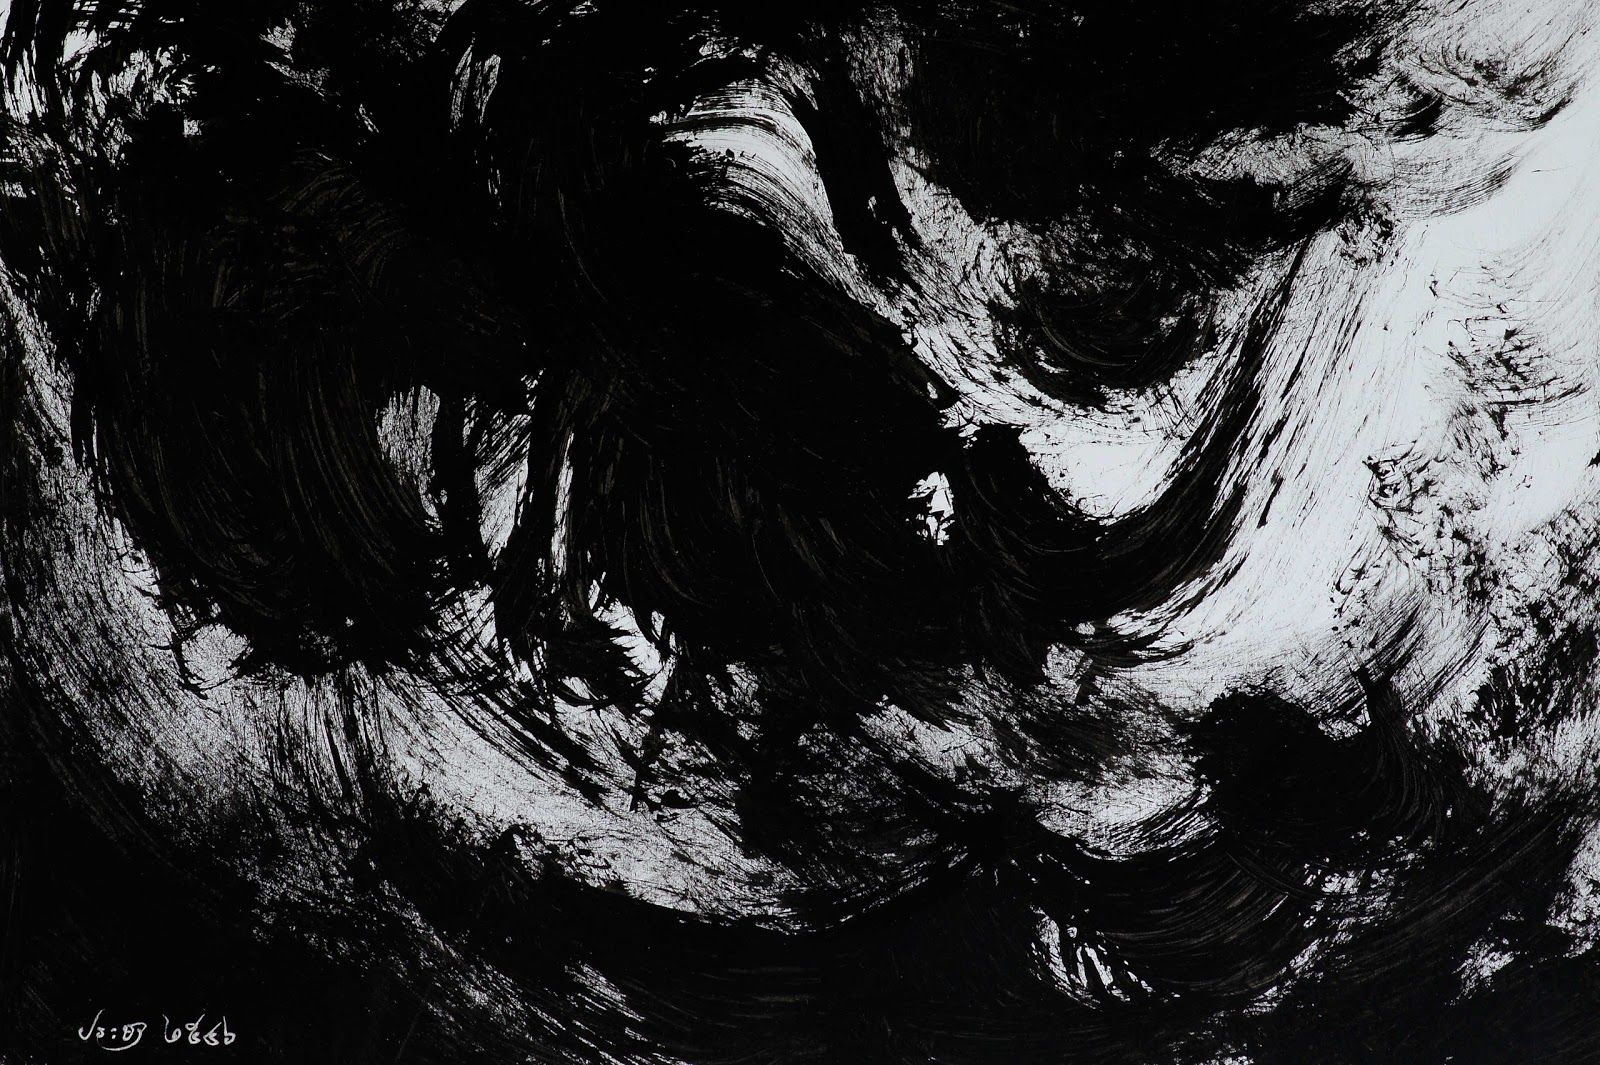 Abstract Art By Pracha: Clouds in the dark night 2 | Luna ...